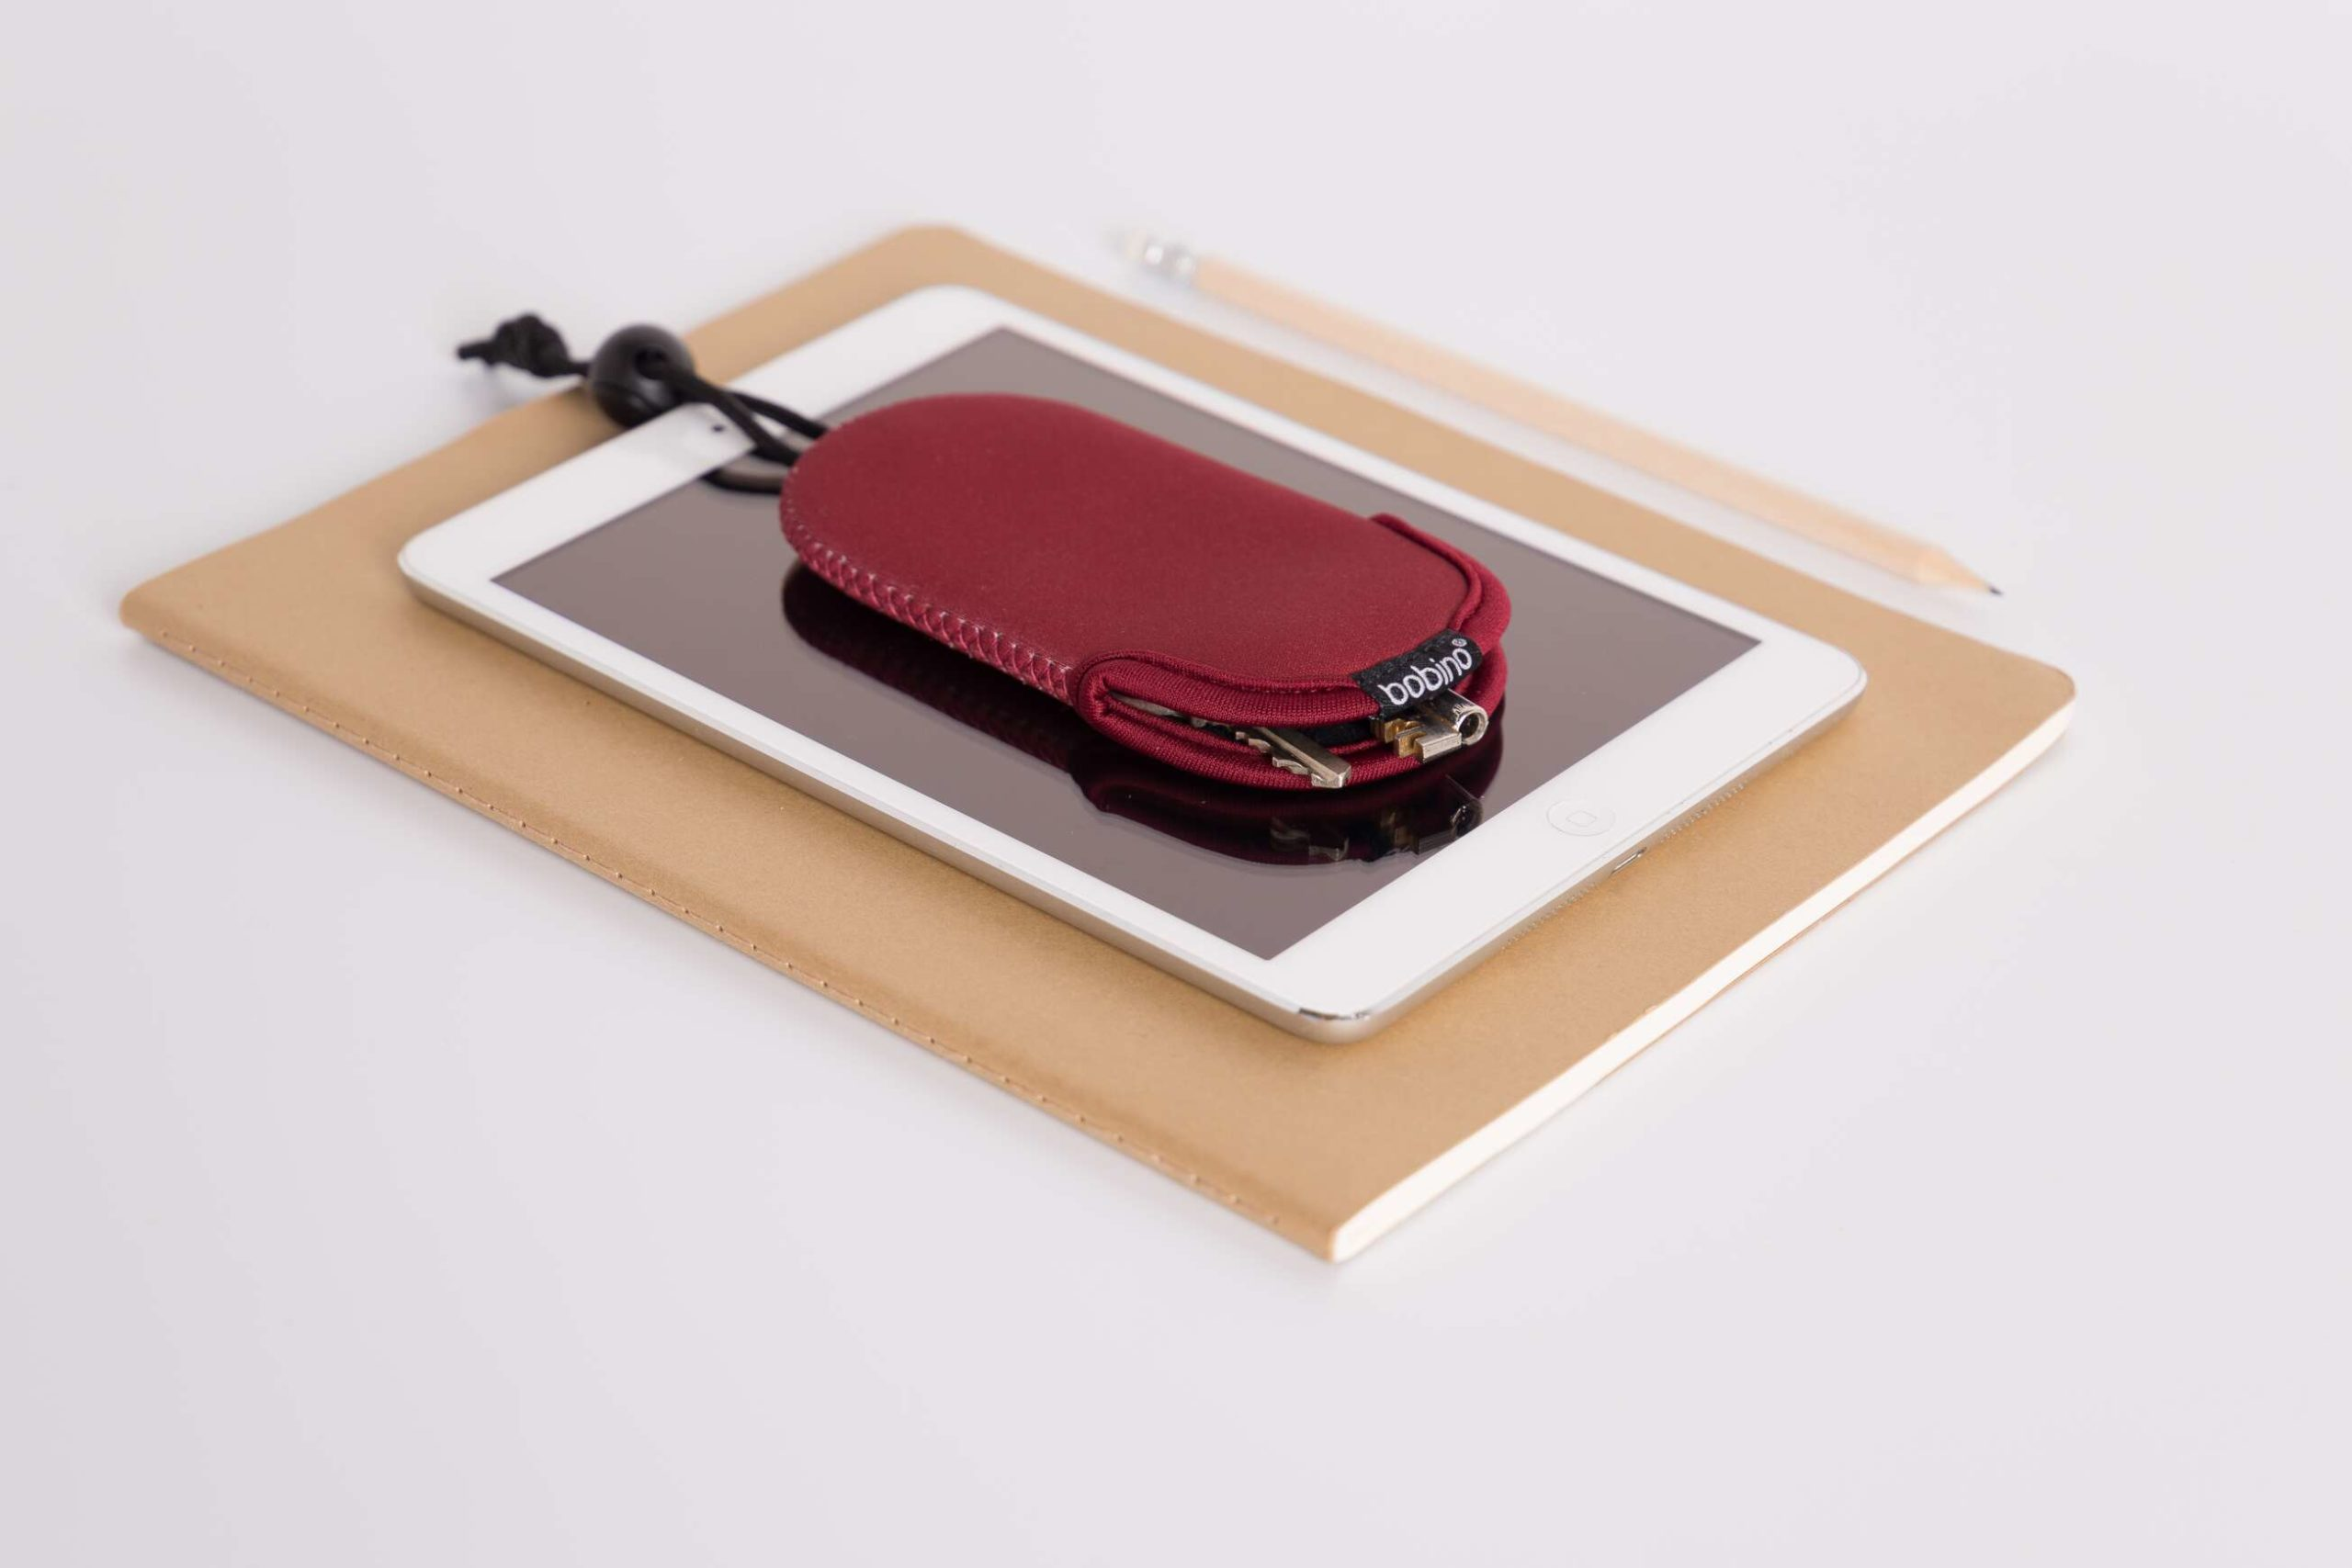 KEY SLEEVE Daily Products by ALOS. Product Design Studio.